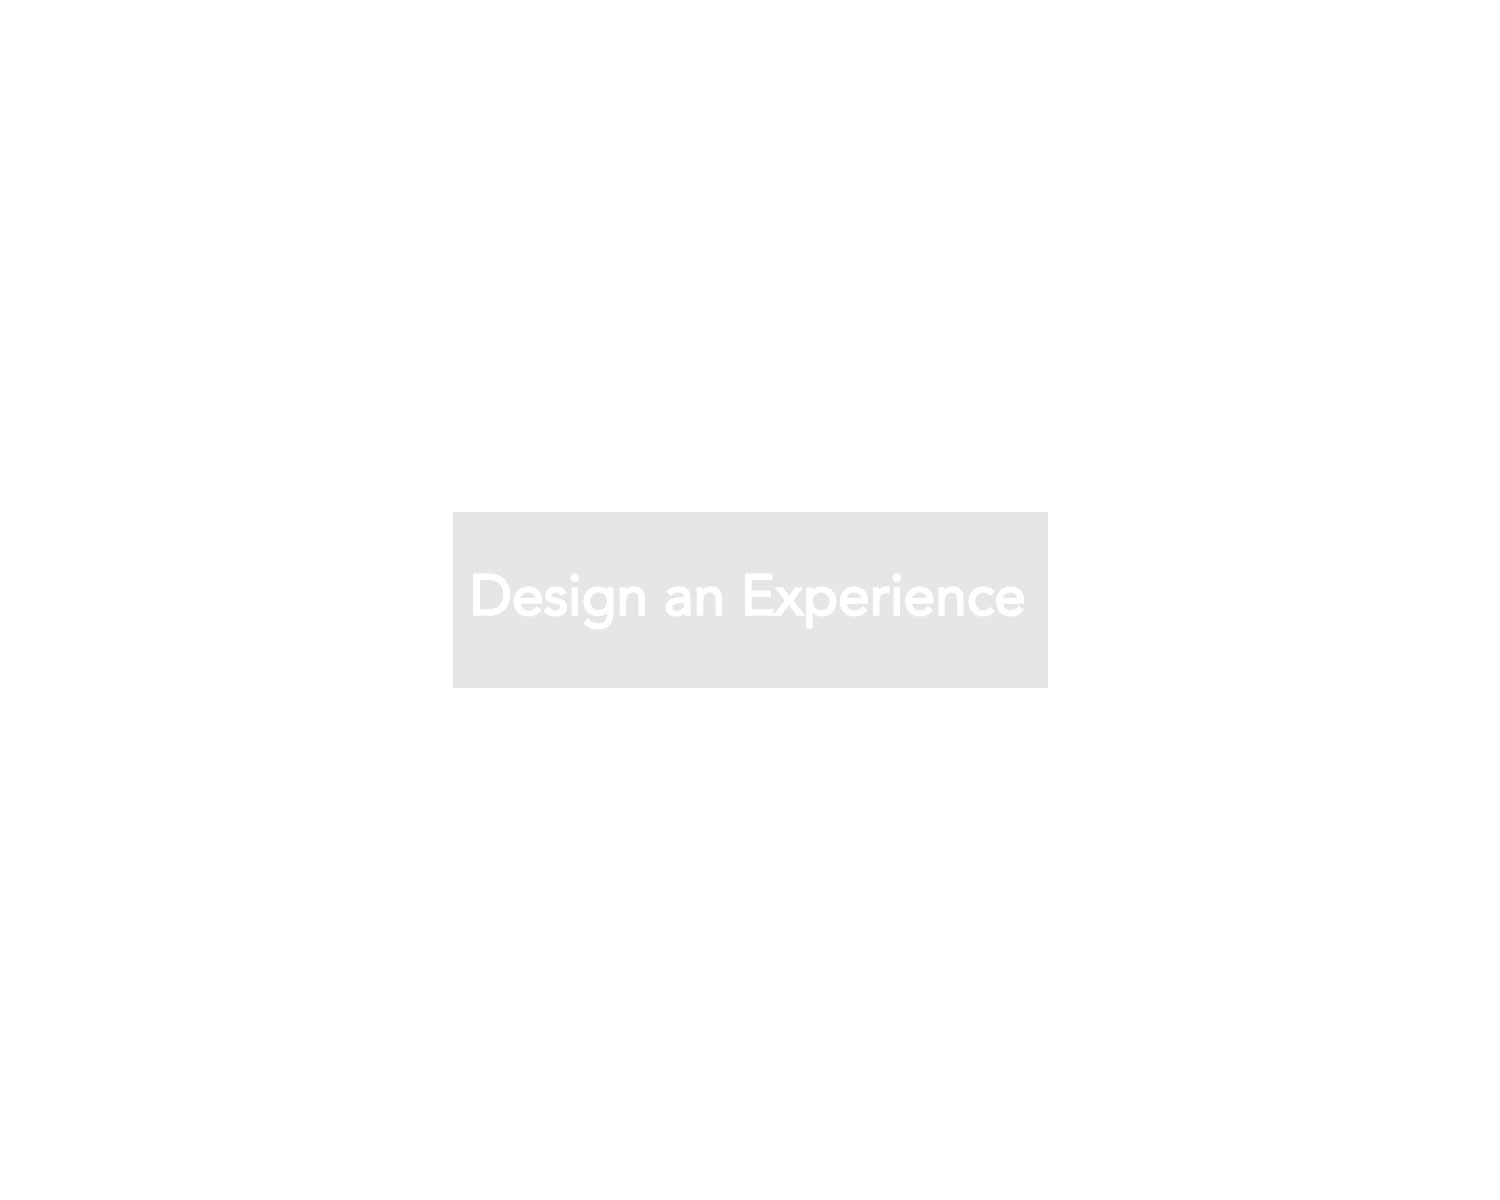 design-experience-button.jpg